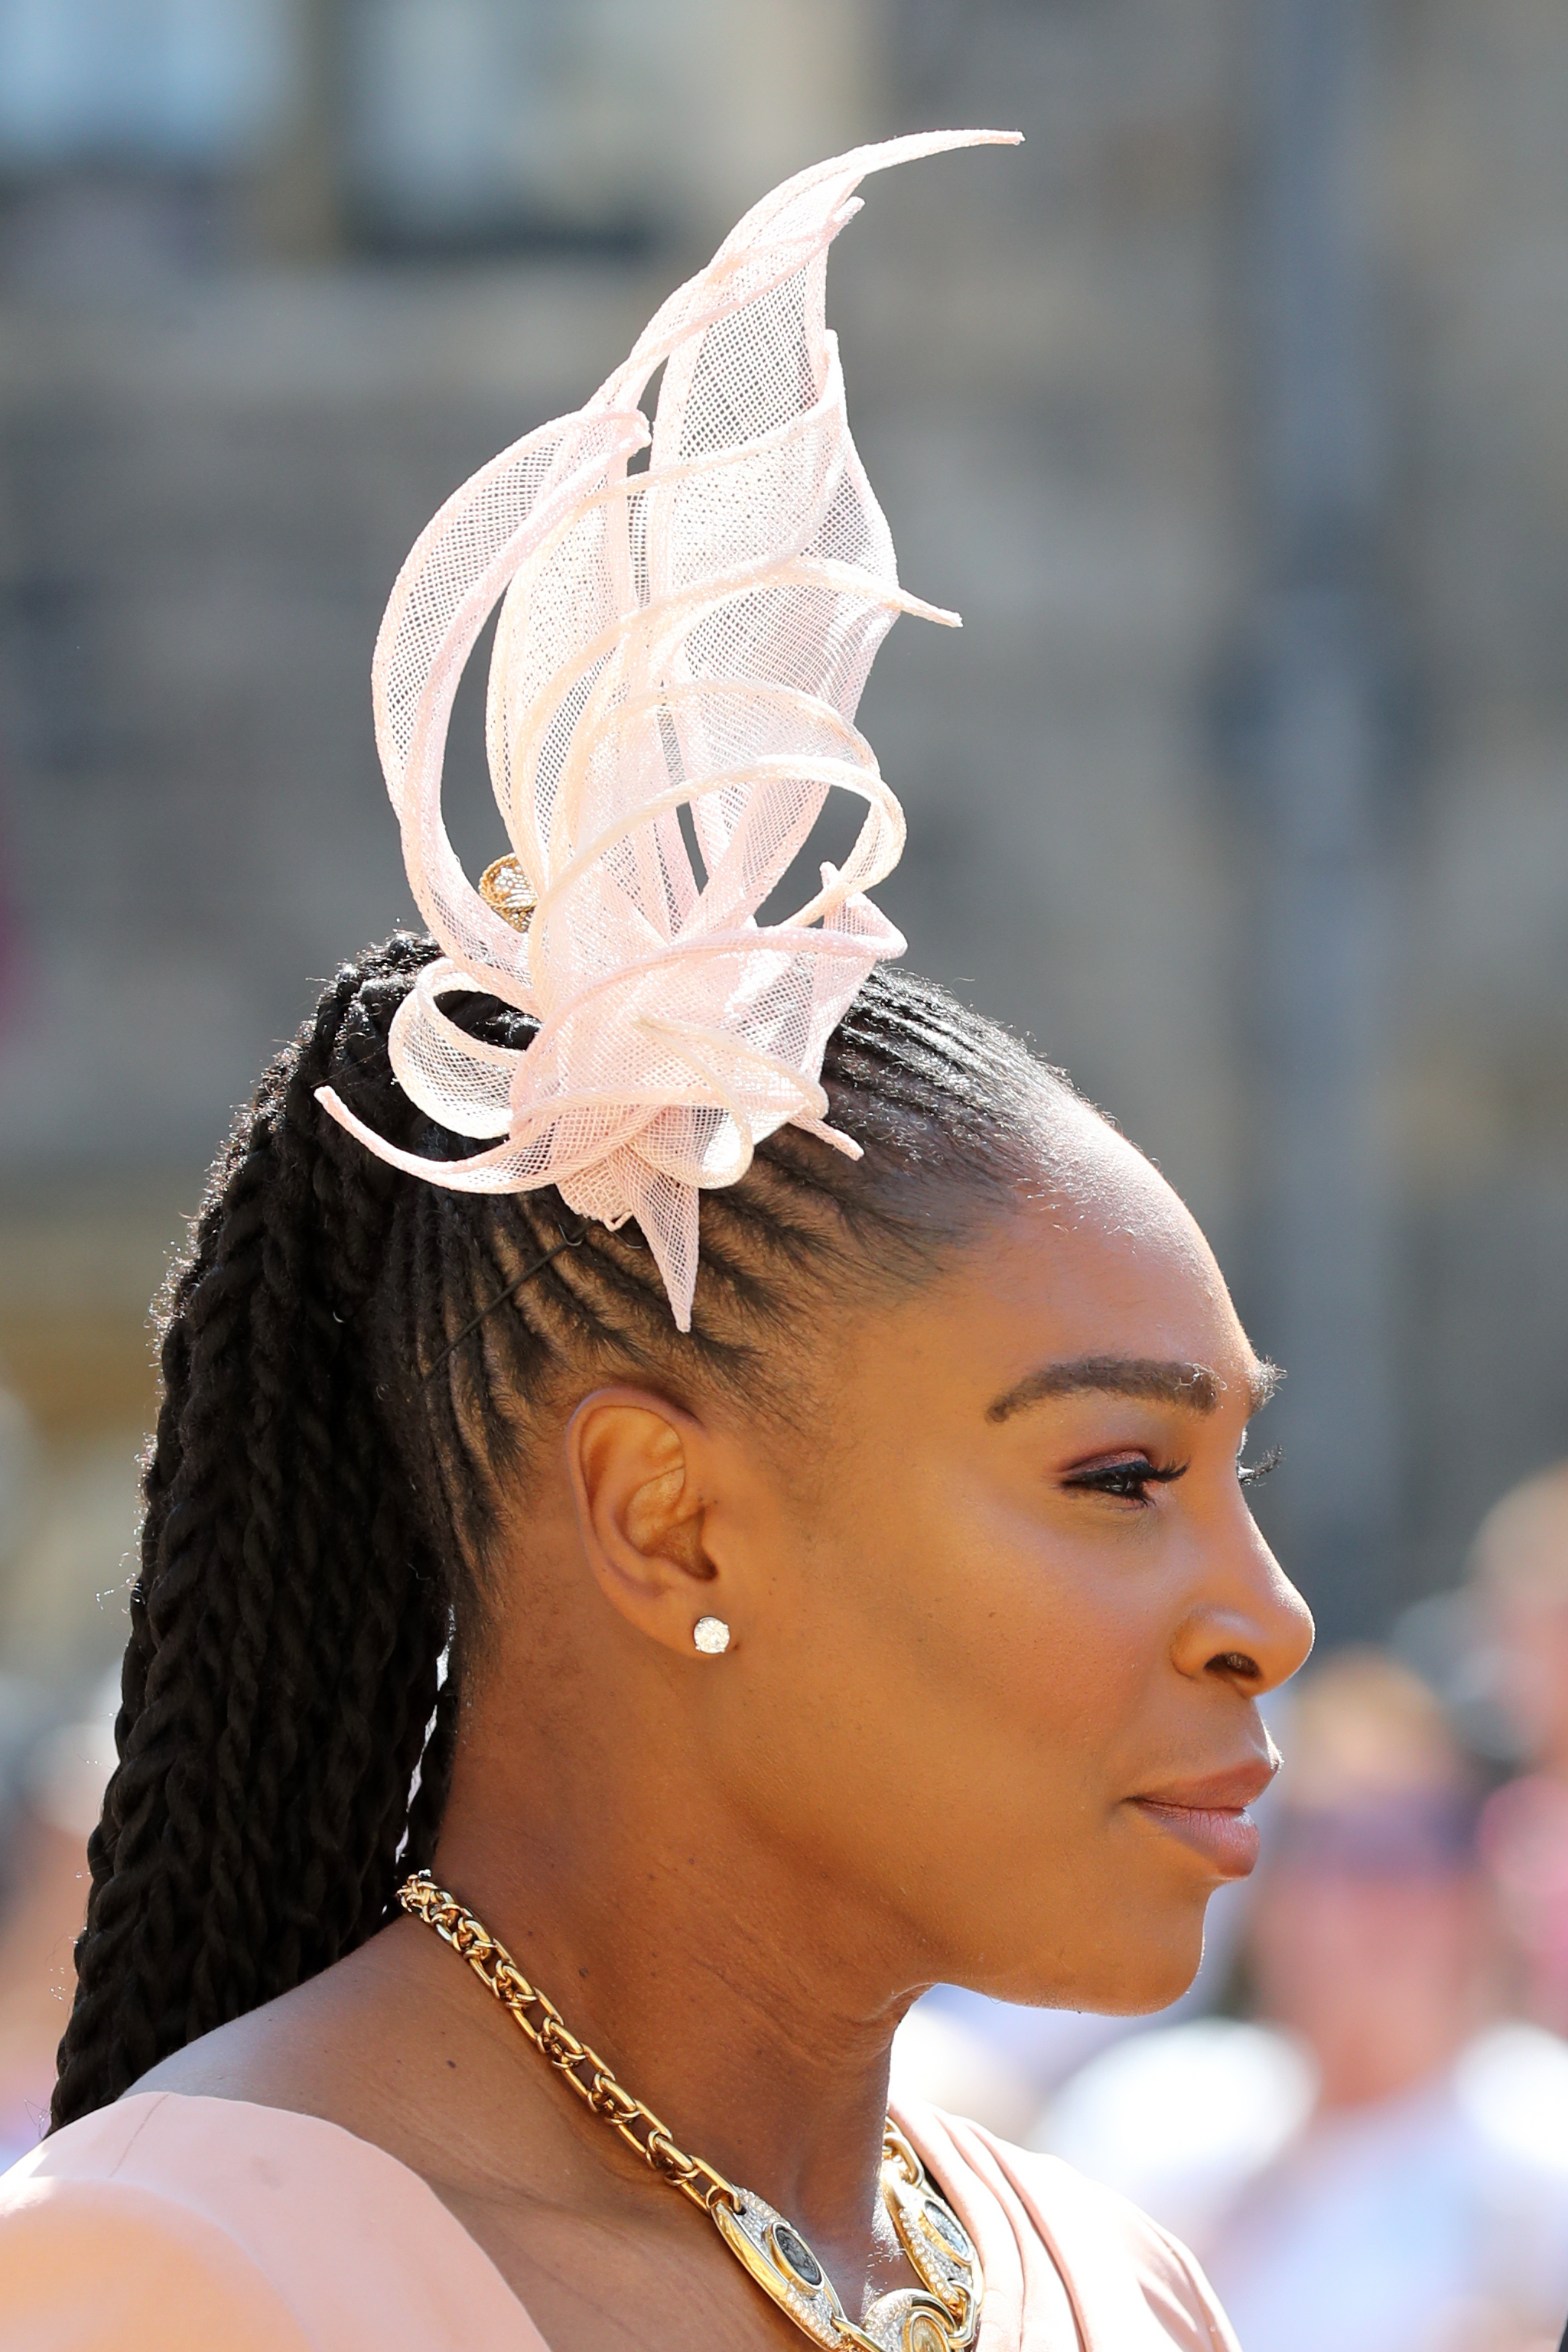 Americans Are Confused About The Hats At Royal Wedding Irish Tendencies Caps Savage Navy Serena Williams Opted For A Delicate Pink Fascinator Gareth Fuller Pa